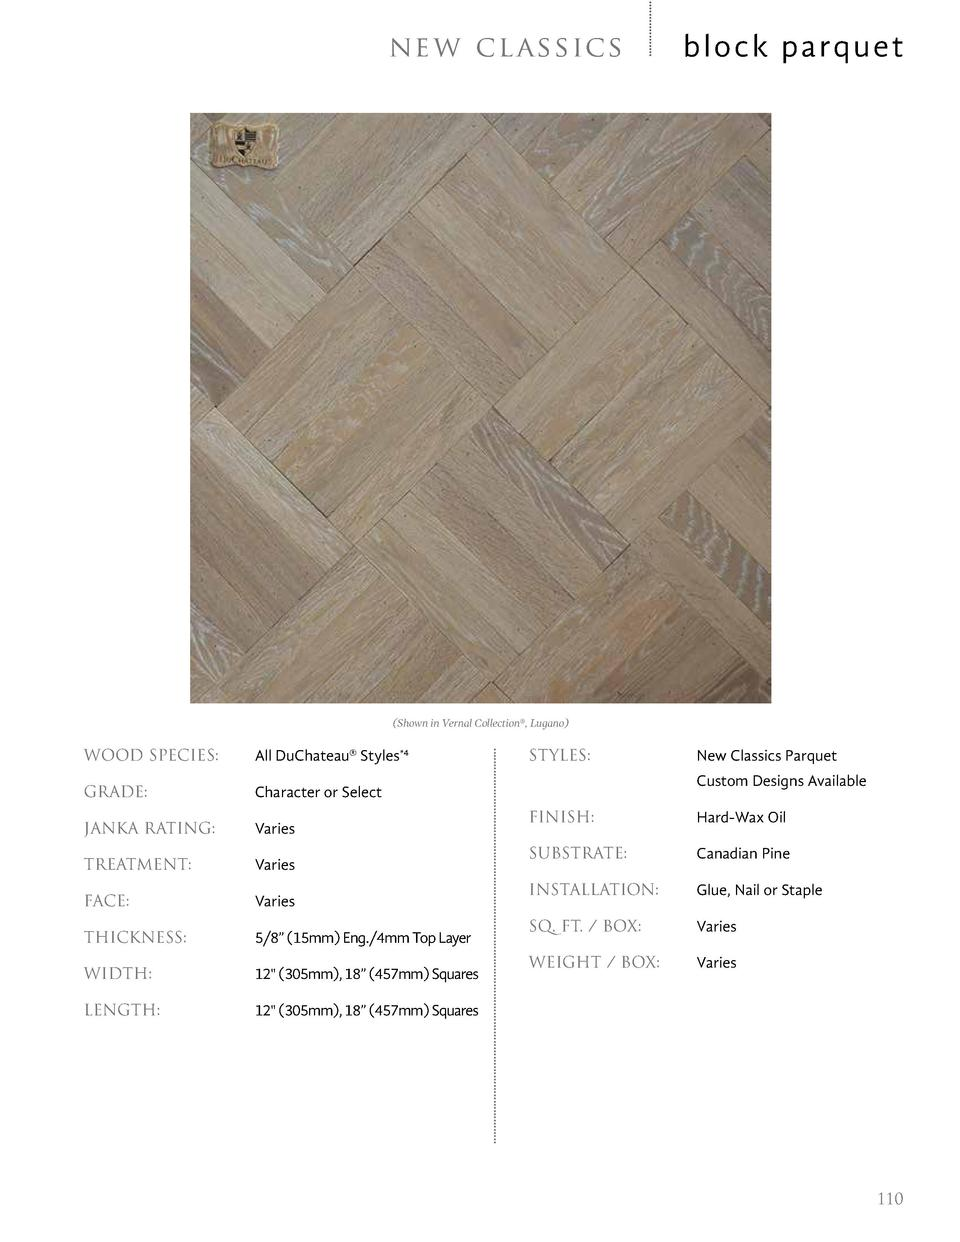 ne w c l a ssic s  block parquet   Shown in Vernal Collection  , Lugano   WOOD SPECIES     All DuChateau   Styles 4  GRADE...